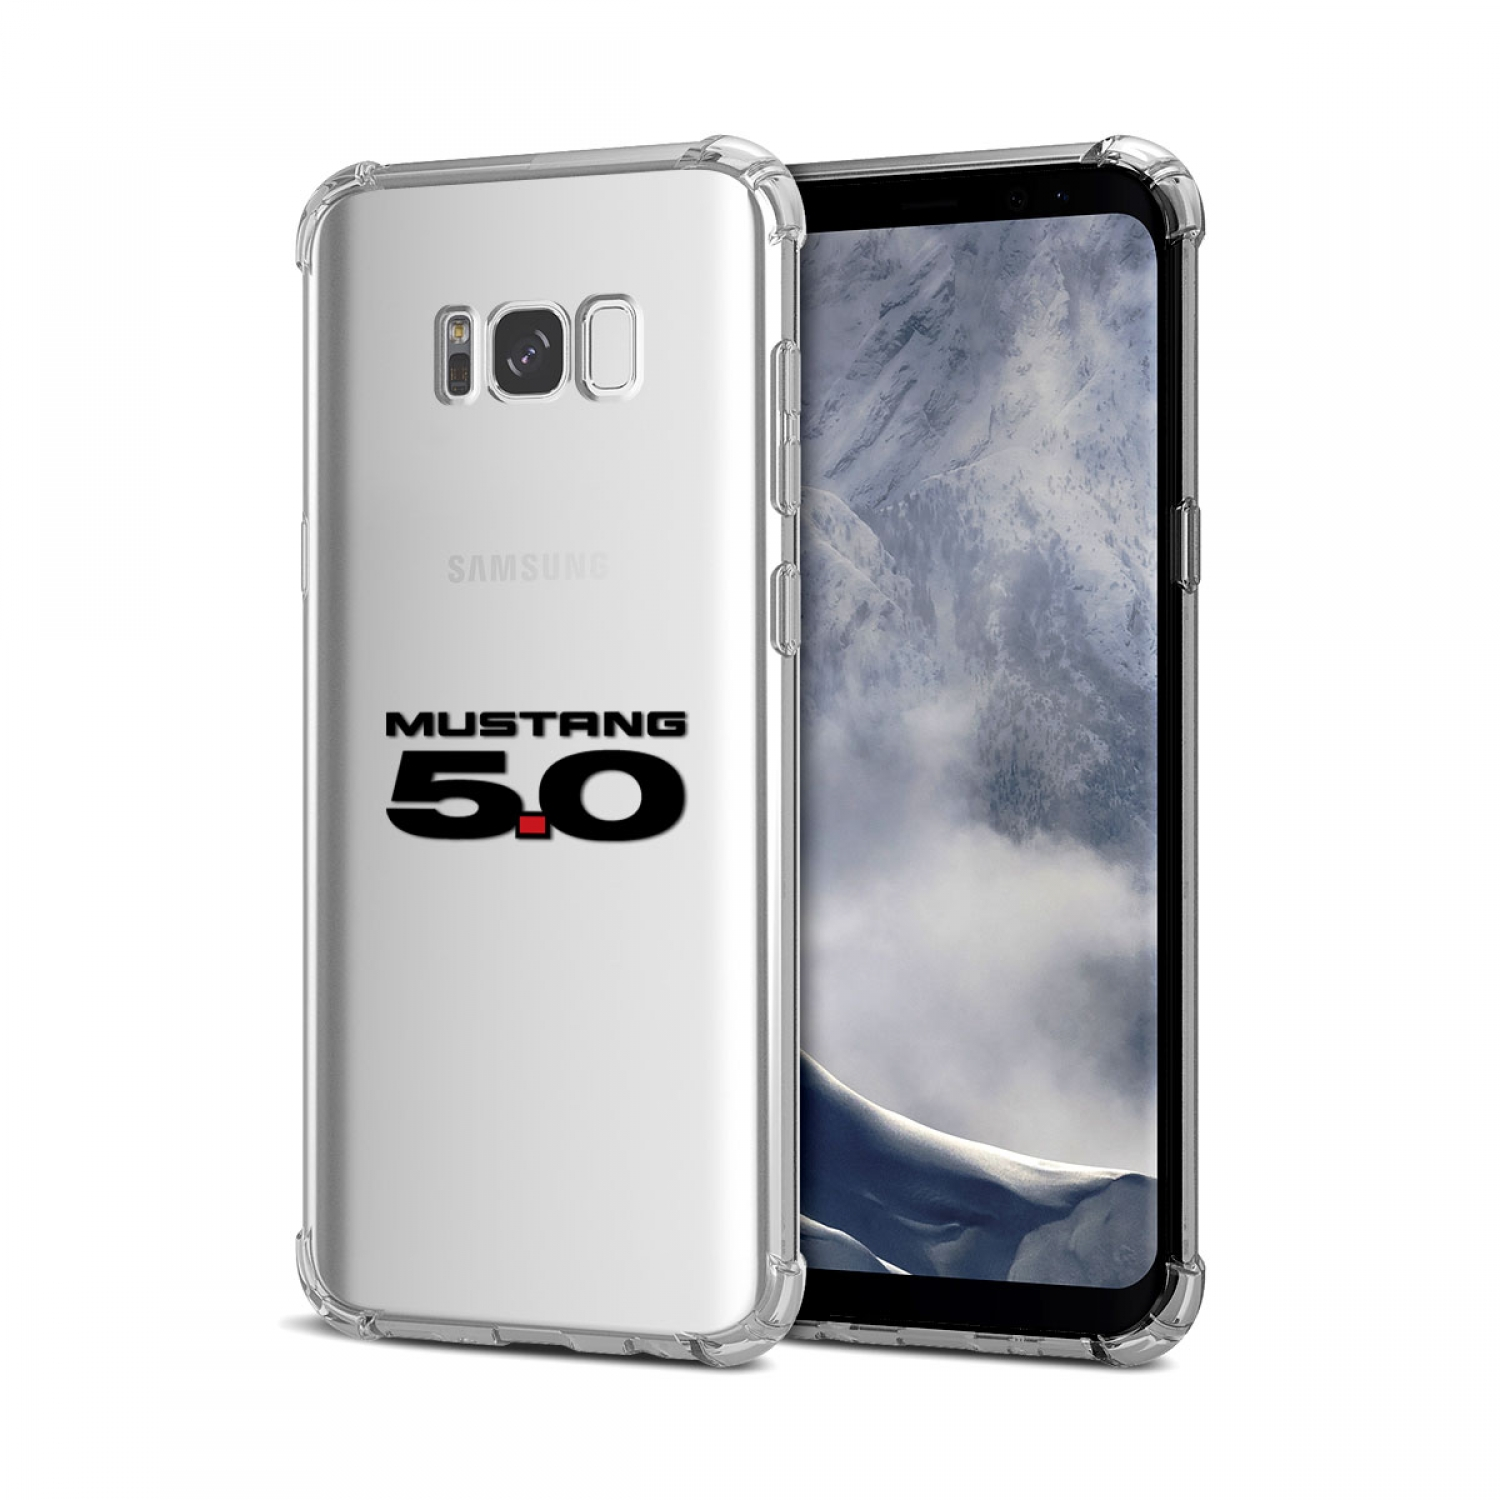 Galaxy S8 Case, Ford Mustang 5.0 Clear TPU Shockproof Cell Phone Case